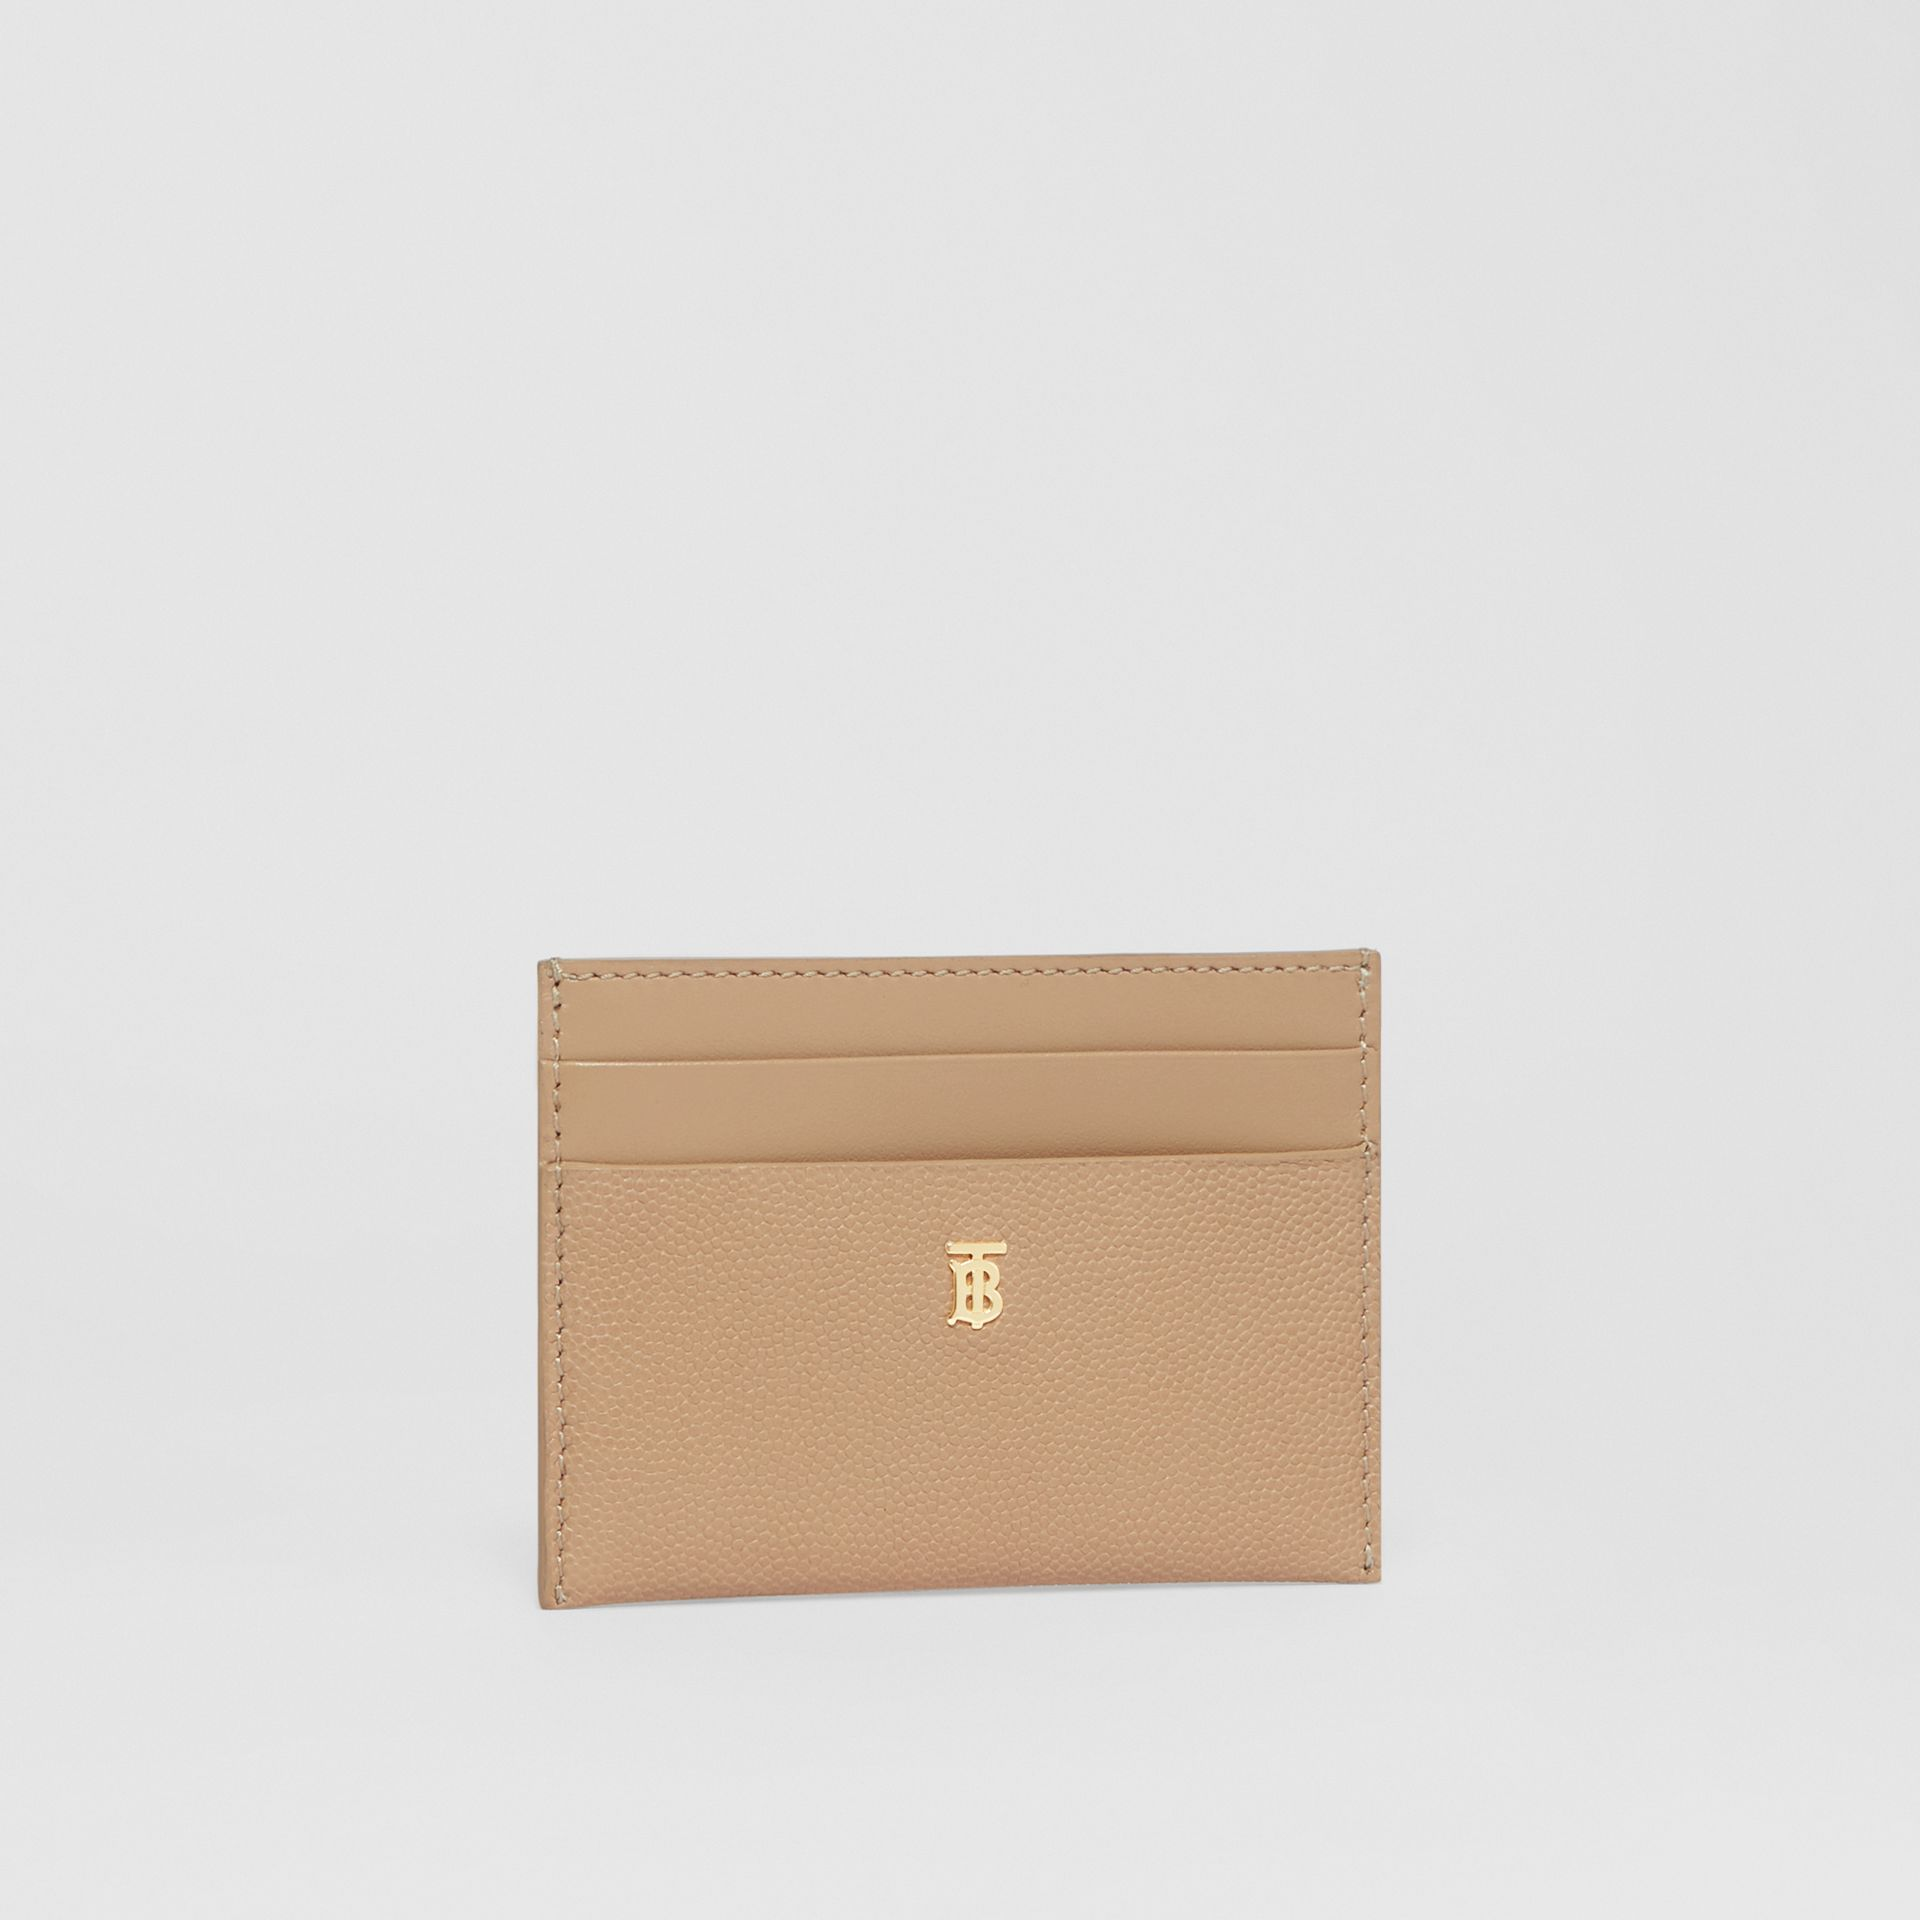 Monogram Motif Leather Card Case in Archive Beige - Women | Burberry - gallery image 2